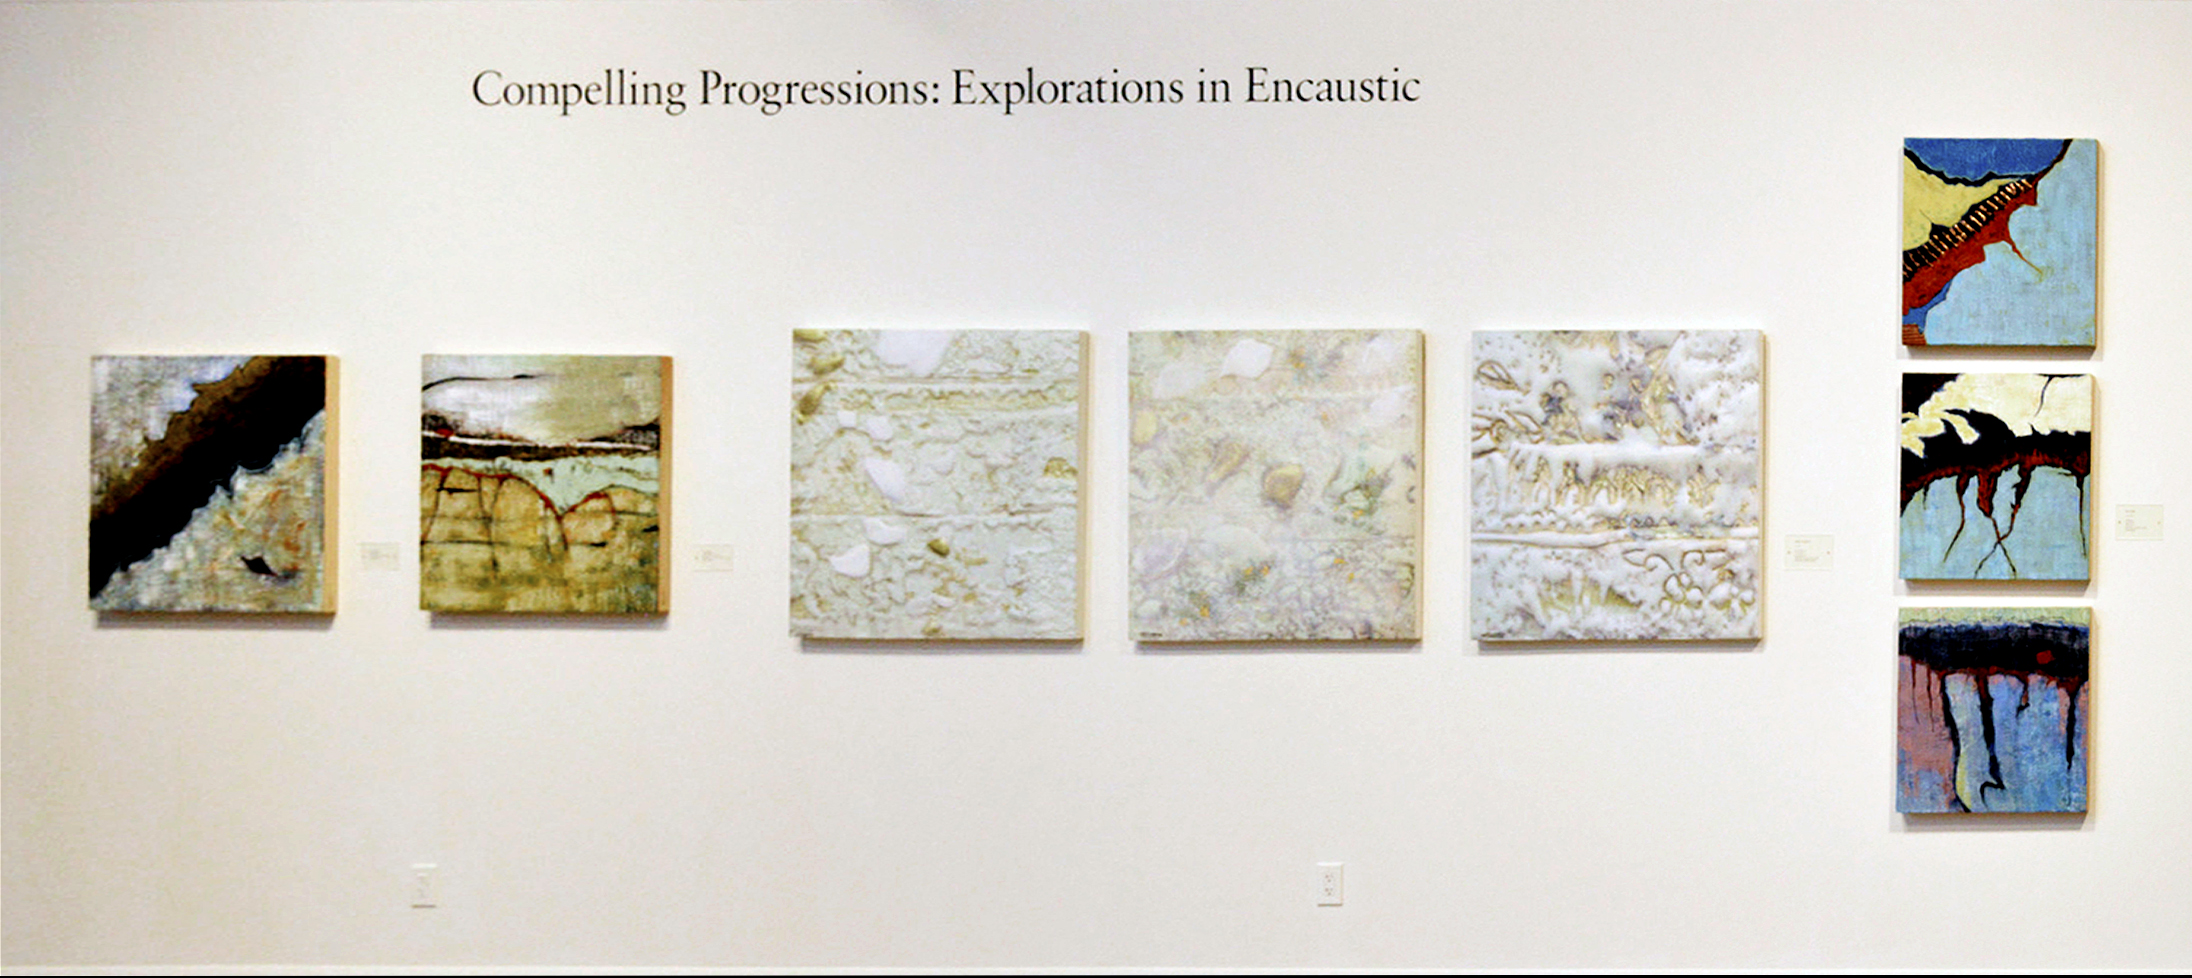 Elemental and Compelling Progressions